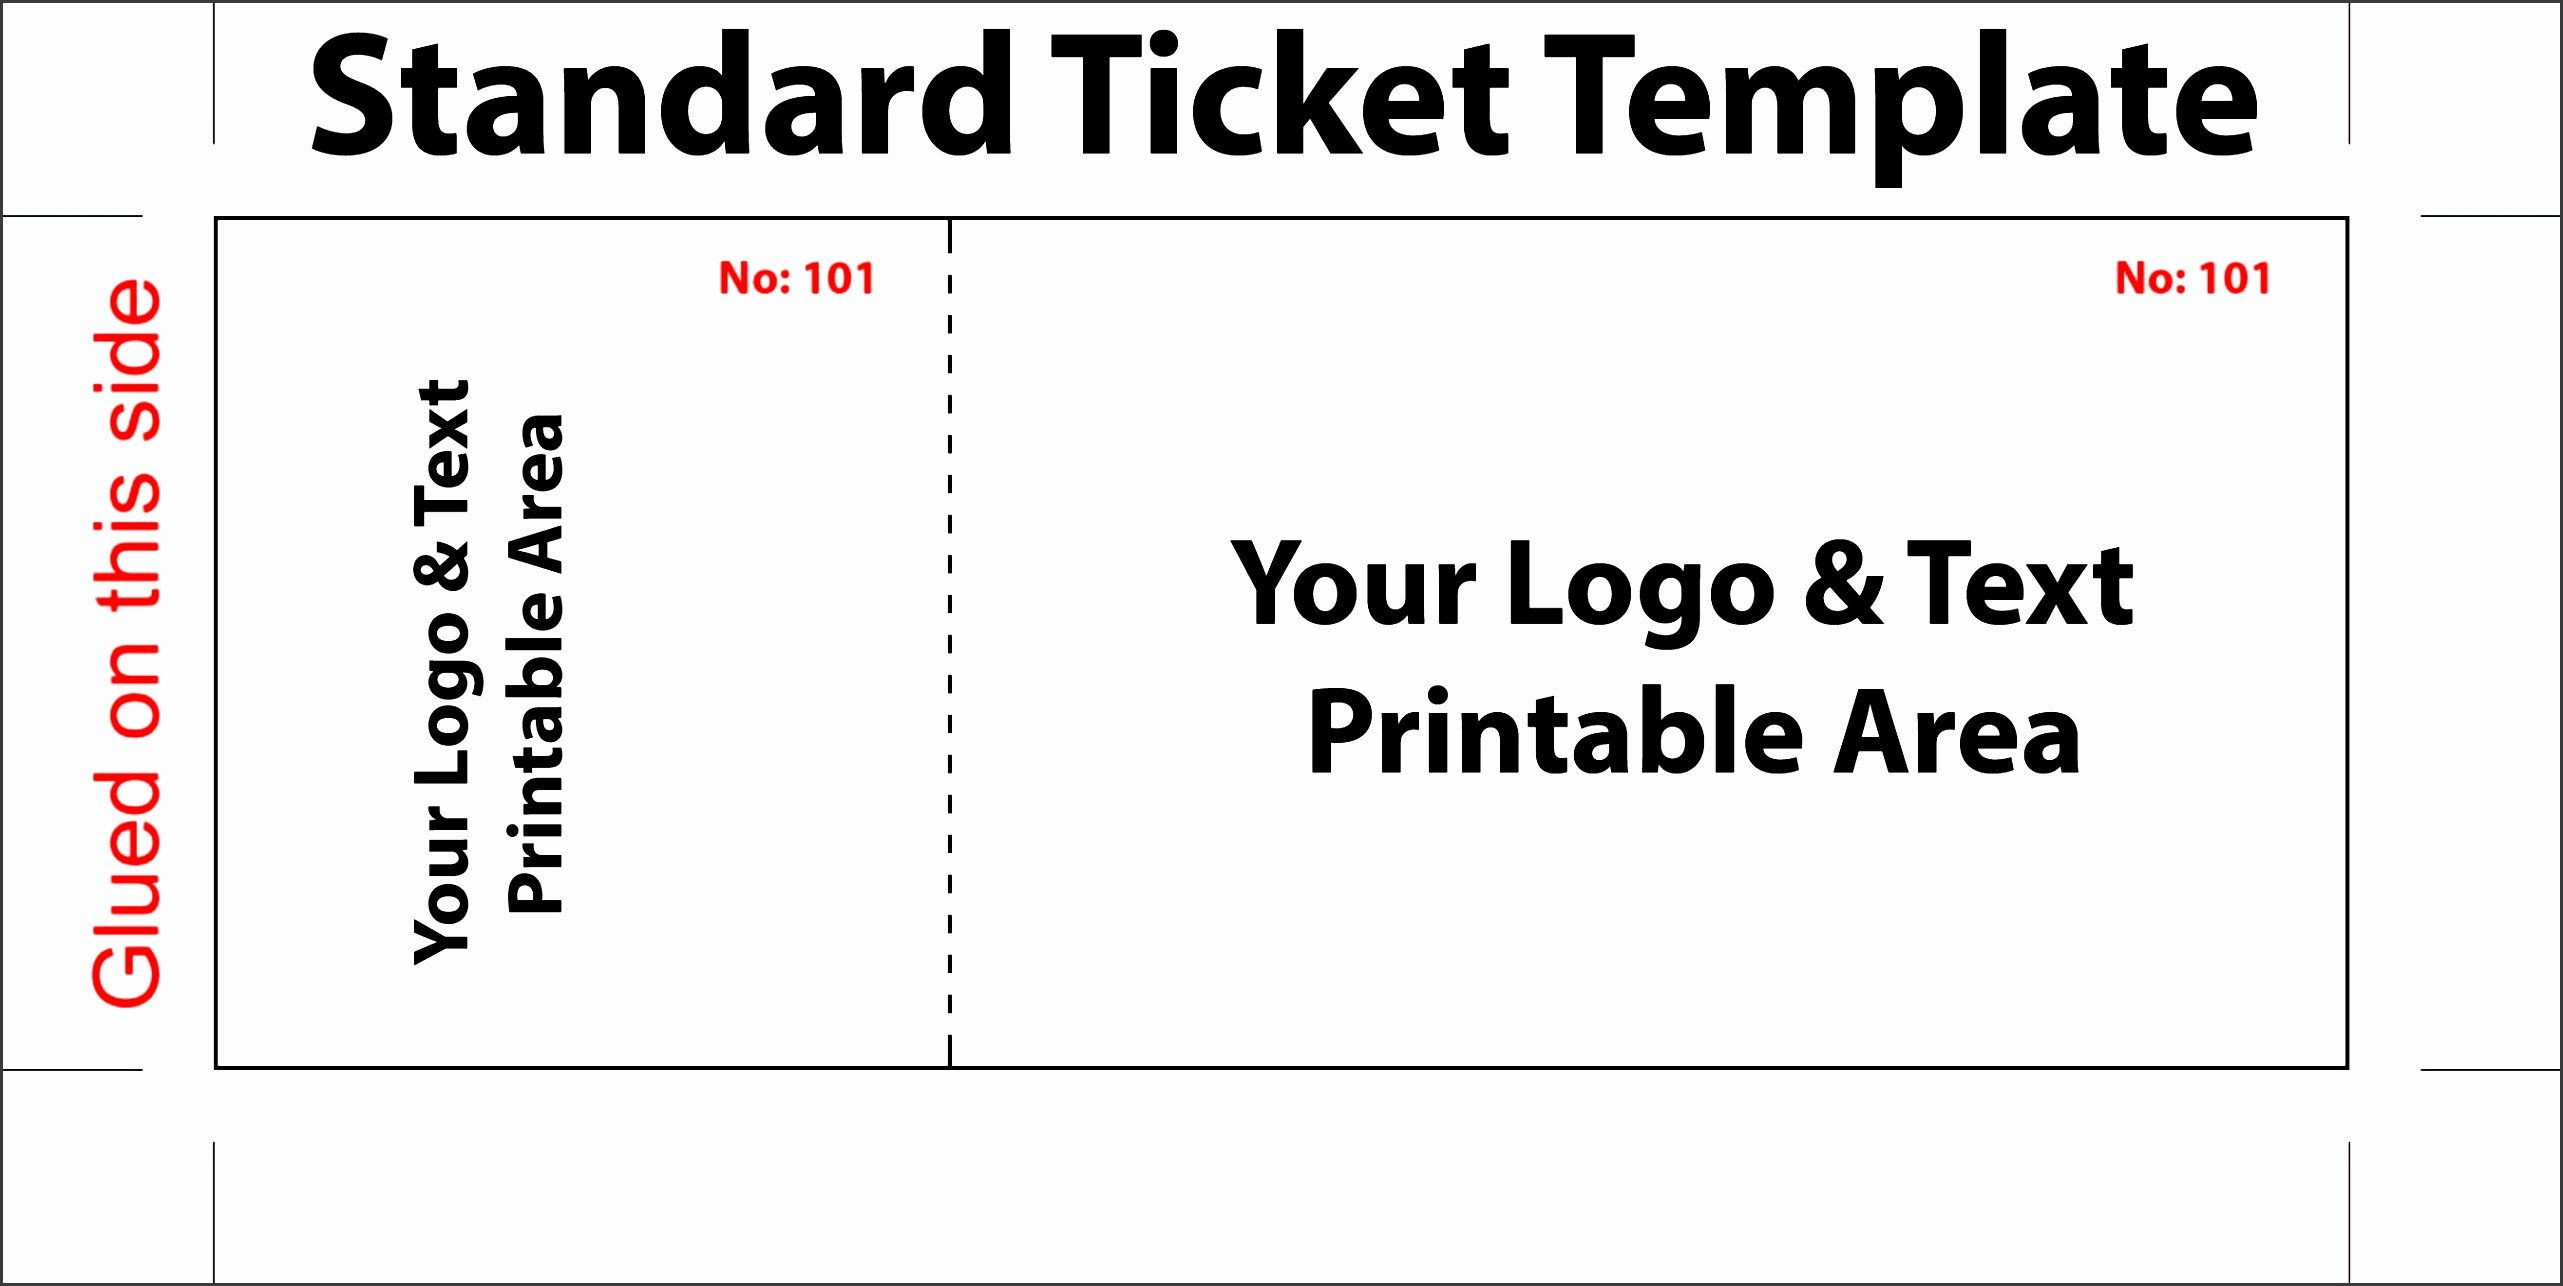 Raffle Ticket Template Excel 10 Editable Raffle Ticket Template Sampletemplatess